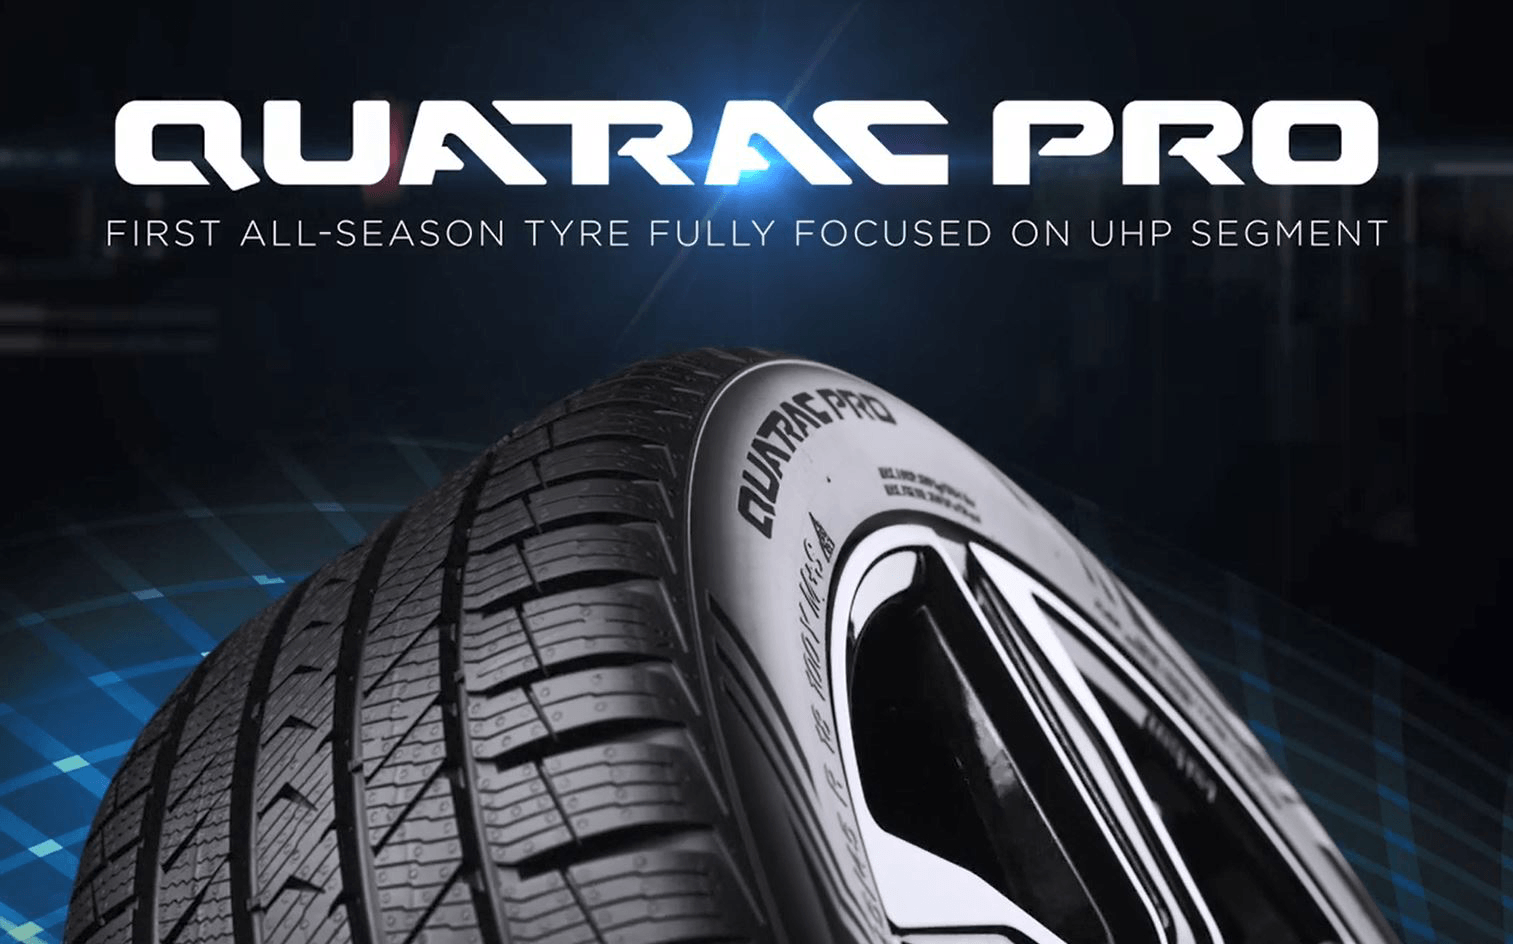 Apollo Launches New Marketing Campaign to Boost Vredstein Tires